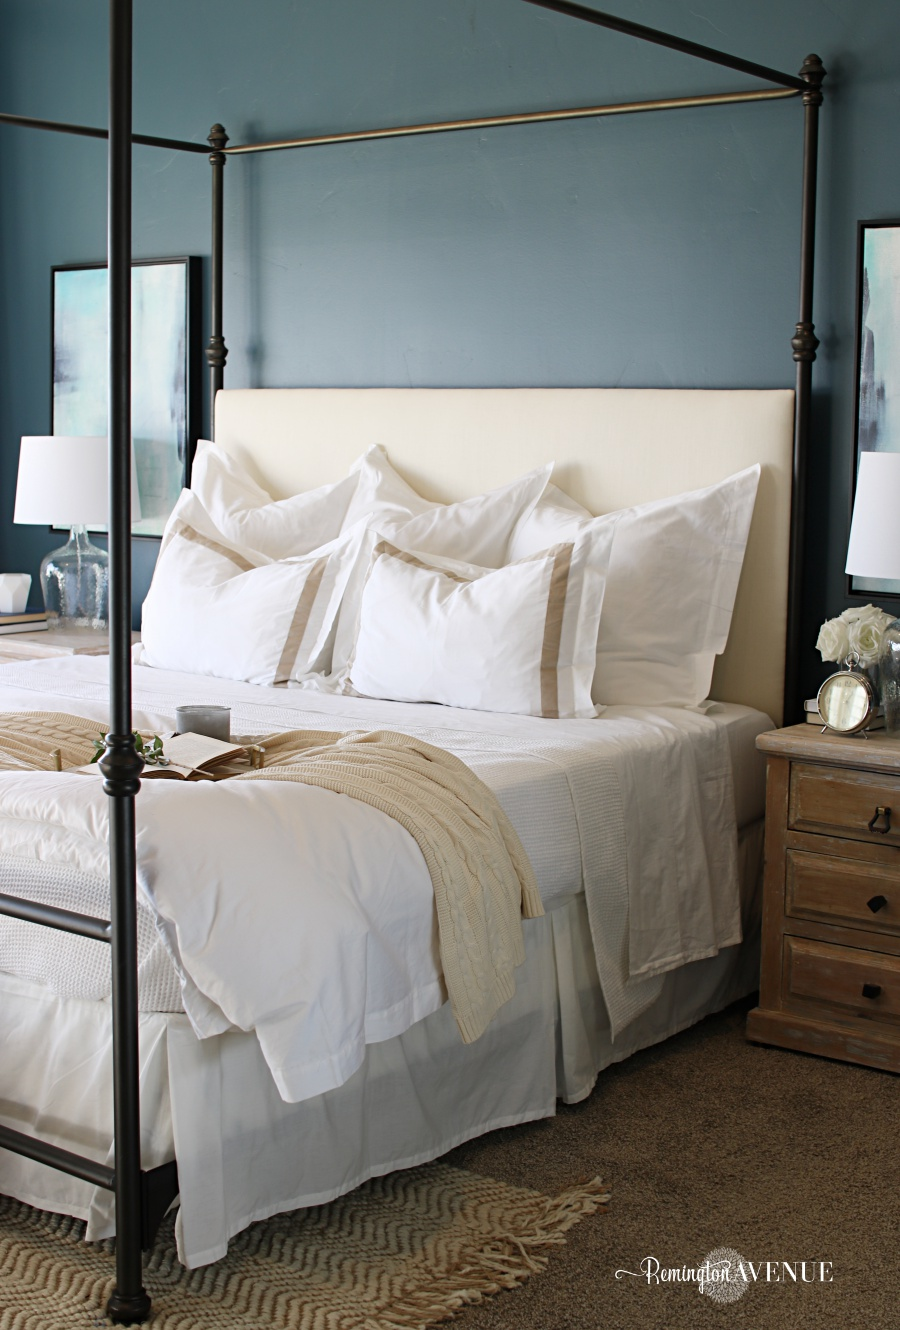 I also selected 3 white hemmed euro shams. They stand tall against the headboard creating yet another layer of comfort and luxury.